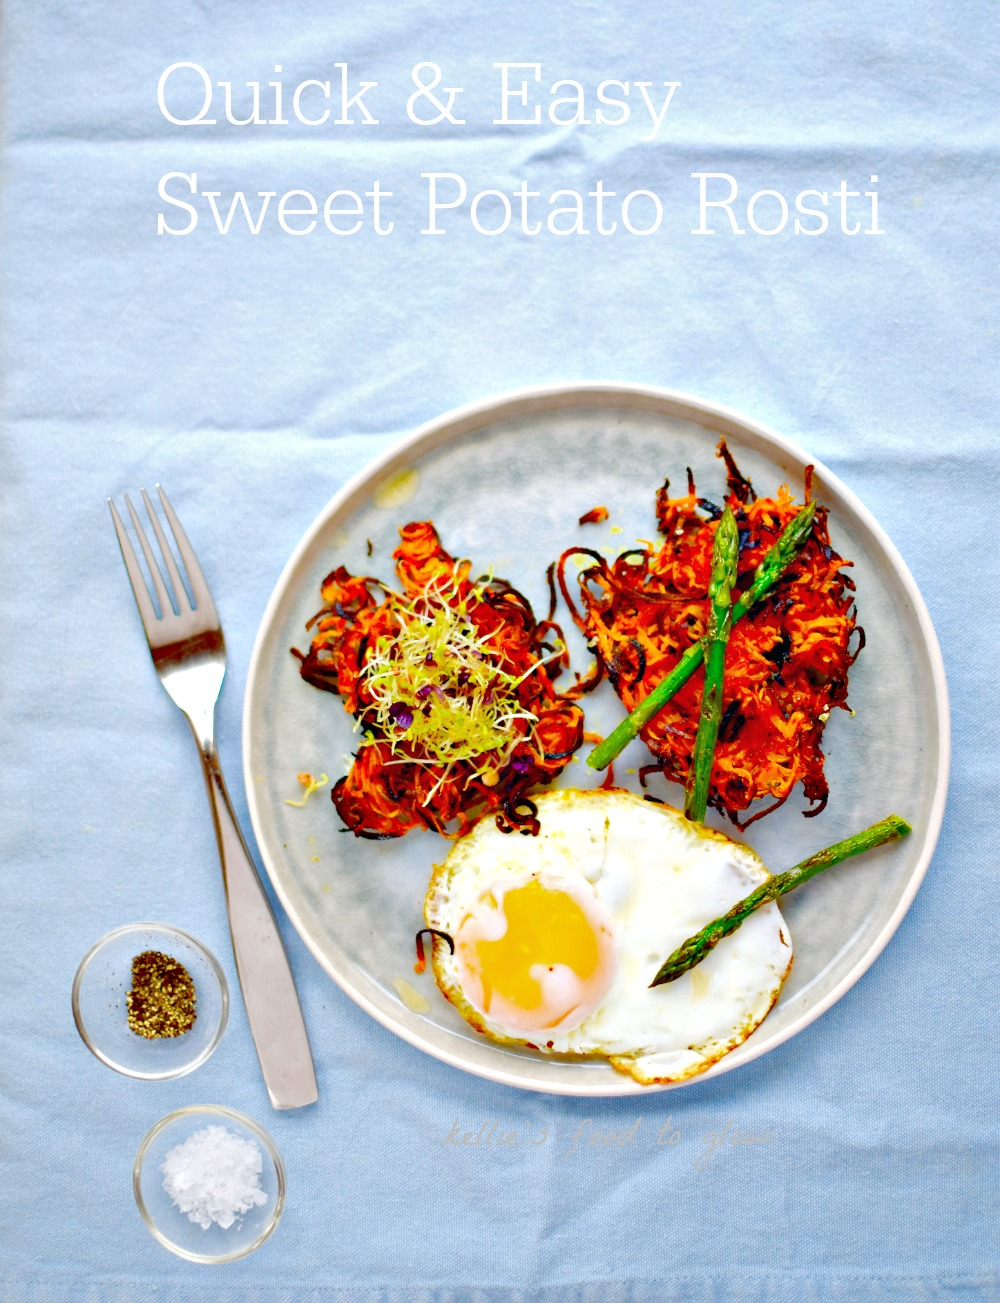 Make soft yet crispy sweet potato rosti in your waffle maker! This makes a great base for veggies (also cooked in the waffle makers) and eggs for a fun breakfast, brunch or light supper. Just add hot sauce!